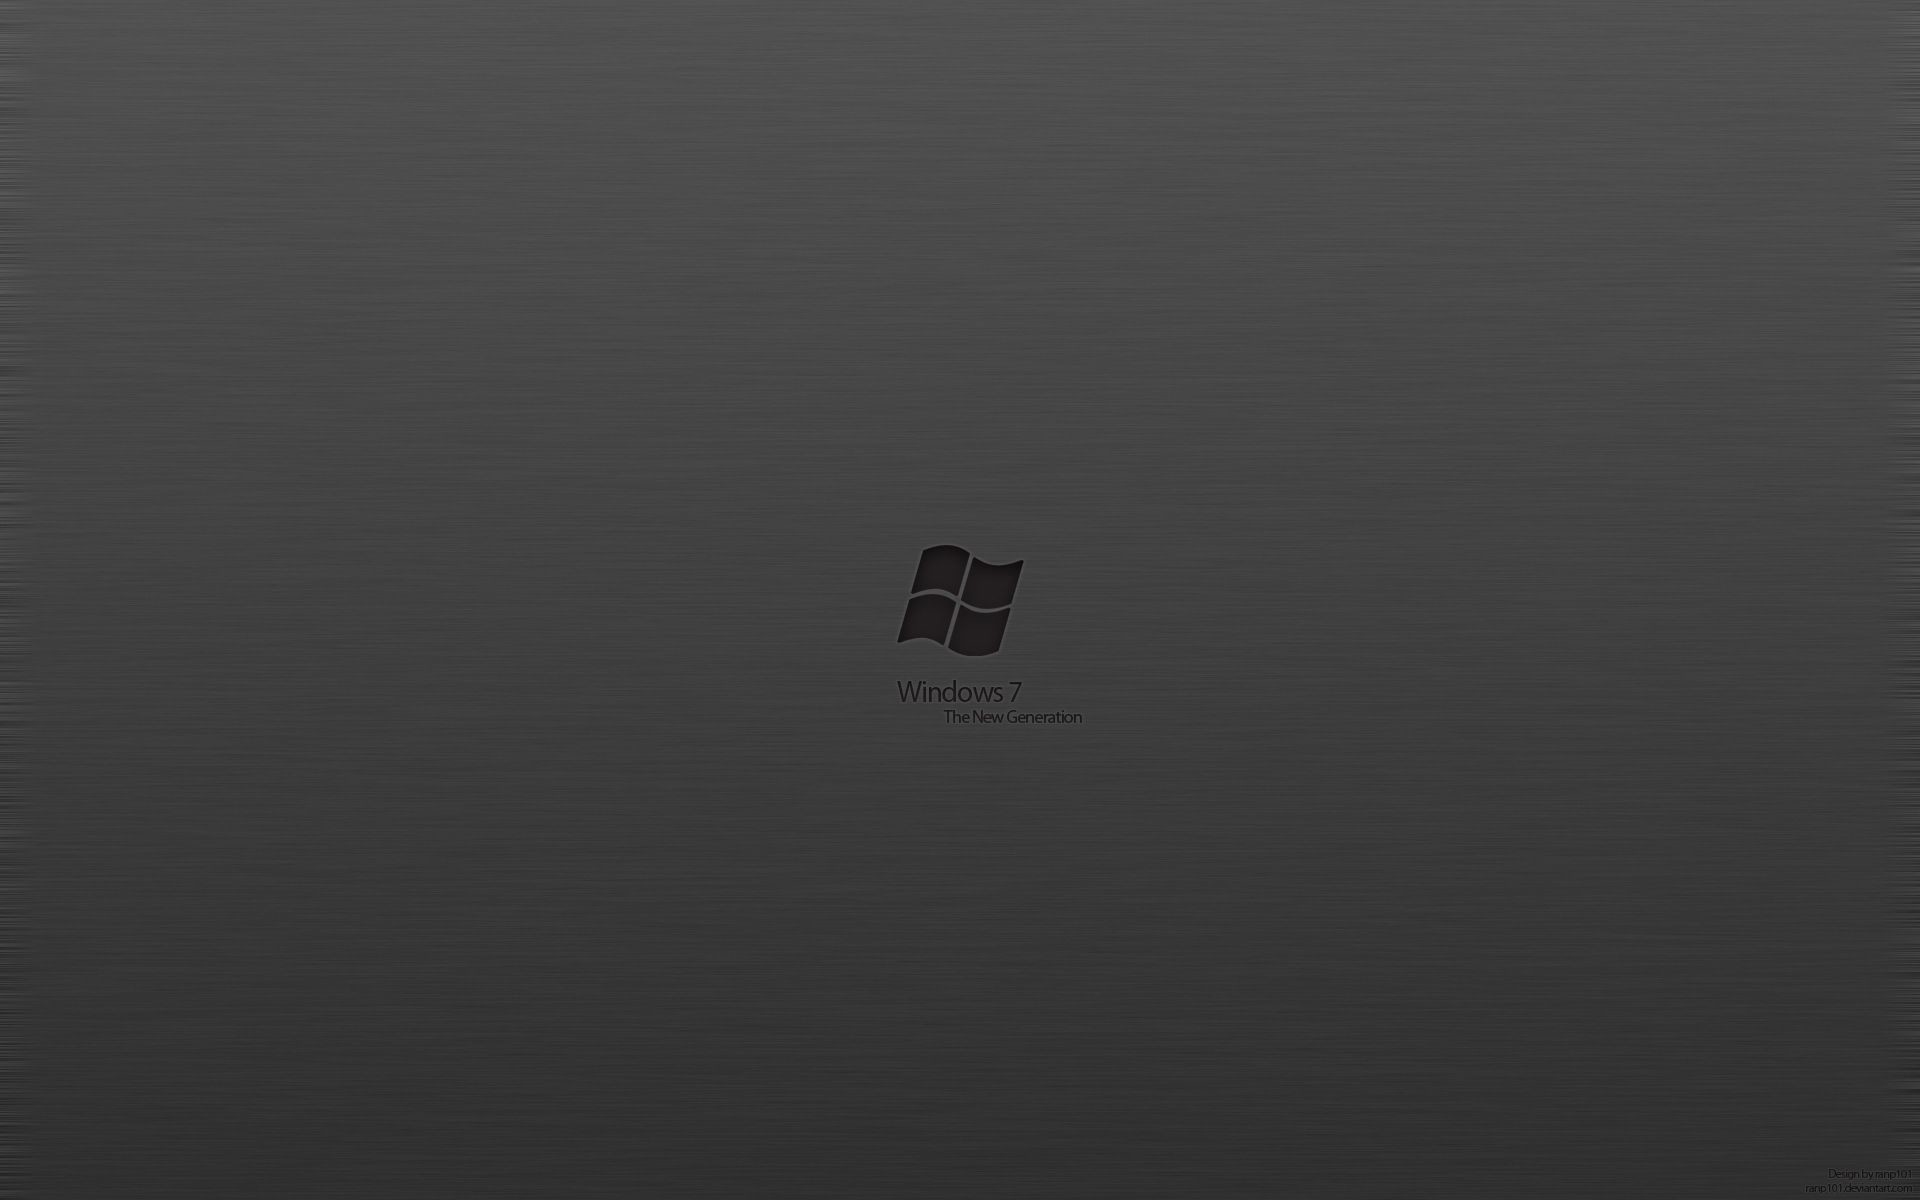 Dark windows 7 wallpaper 1920x1200 0 best hd wallpaper for windows 7 black windowswallpapers download windows voltagebd Choice Image